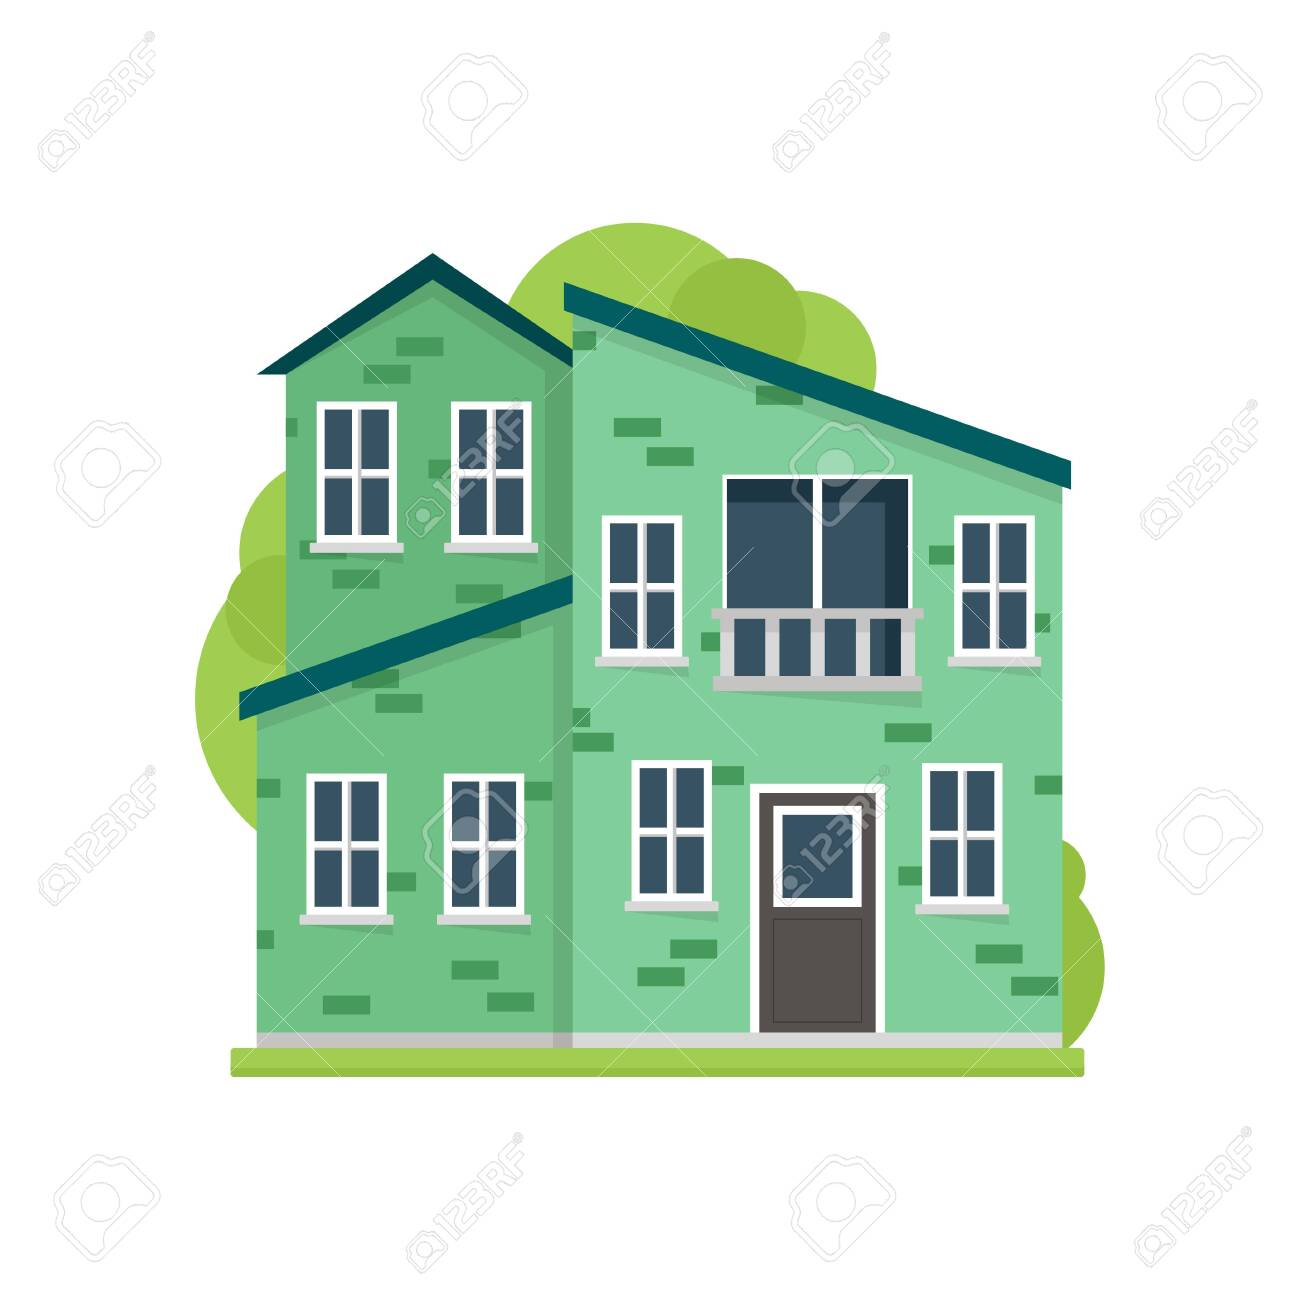 Green paint residential house in modern safe village - 121021203